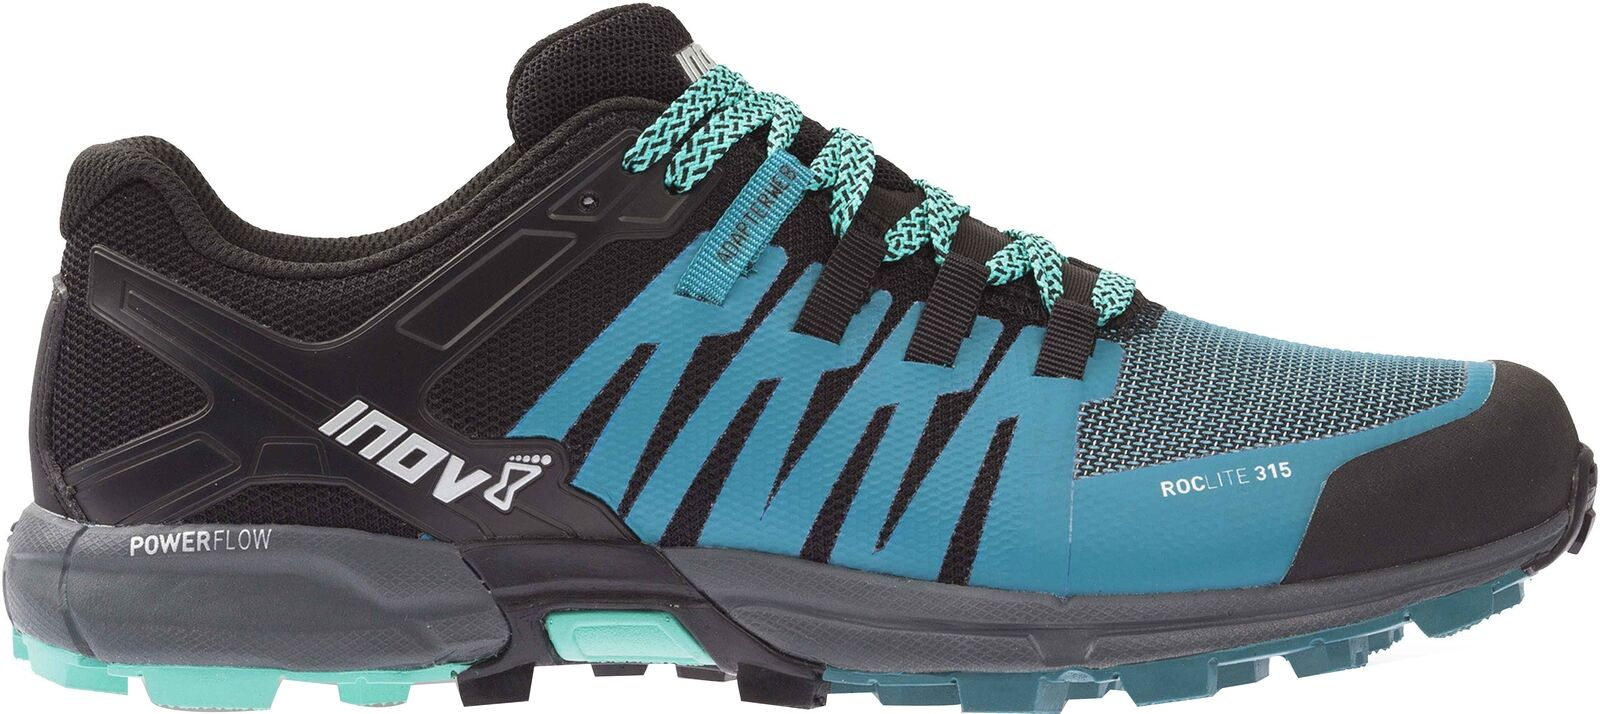 Inov8 Roclite 315 Womens Trail Running shoes - bluee